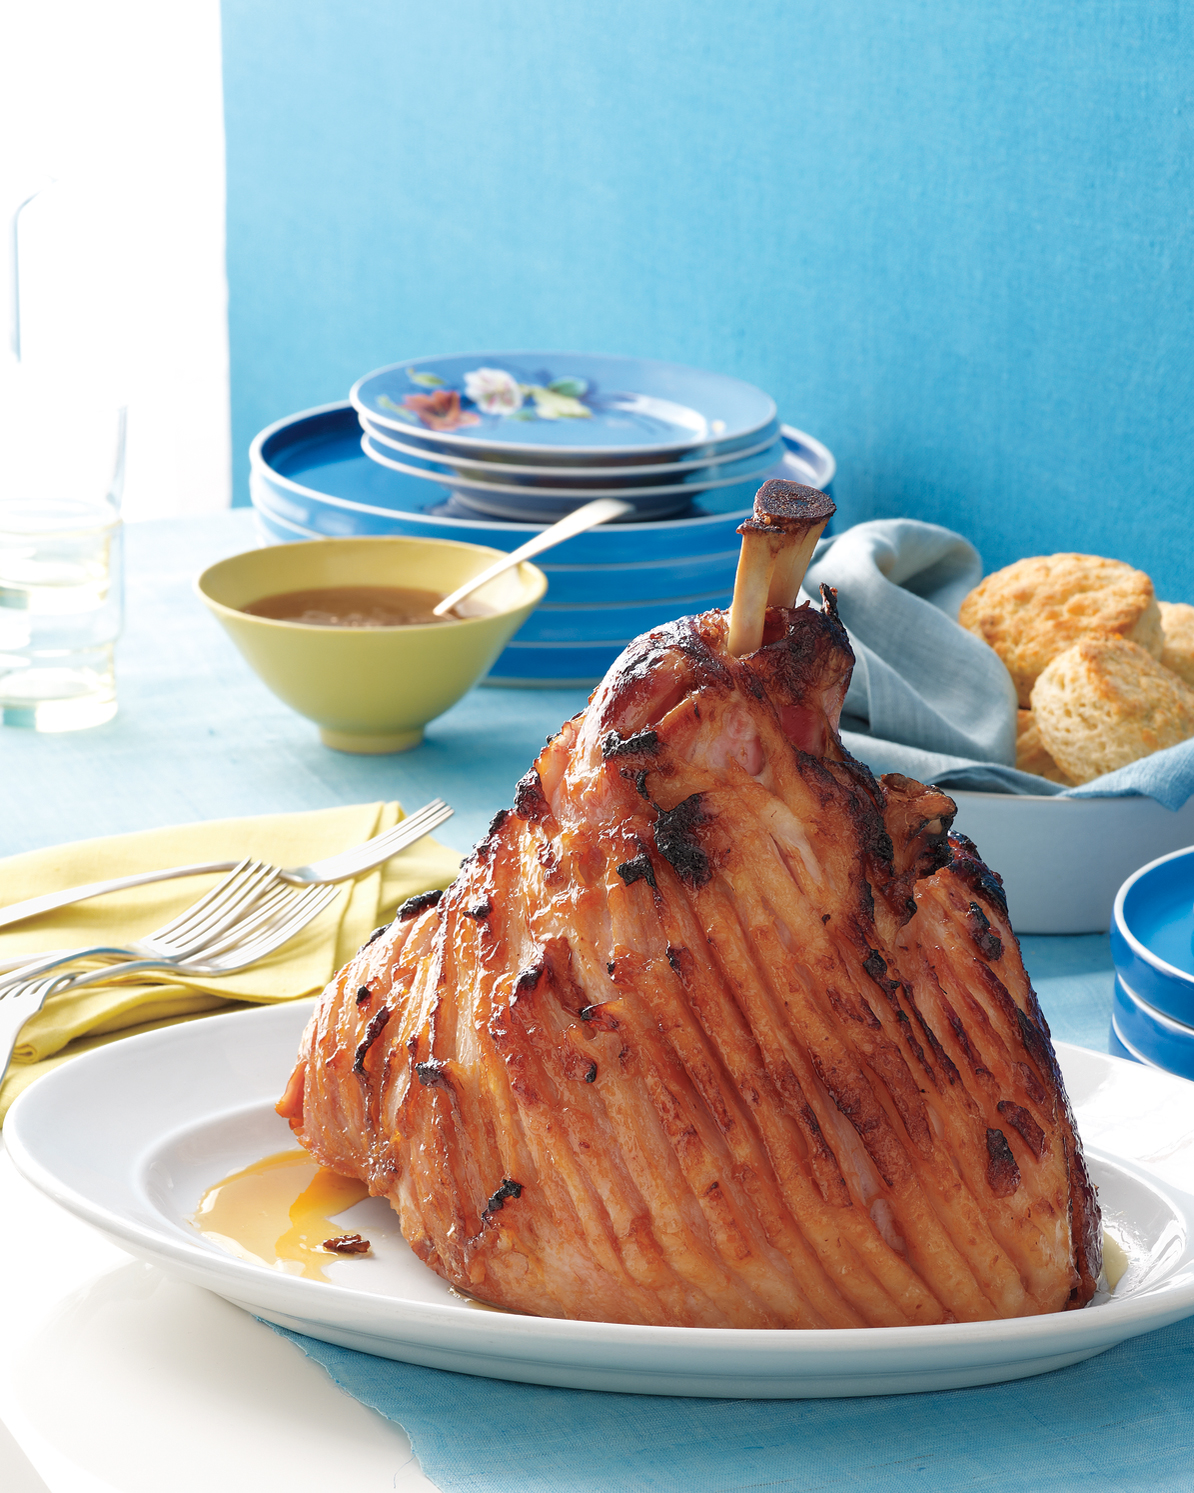 Delight Your Guests with Ham and Biscuits for Easter Dinner